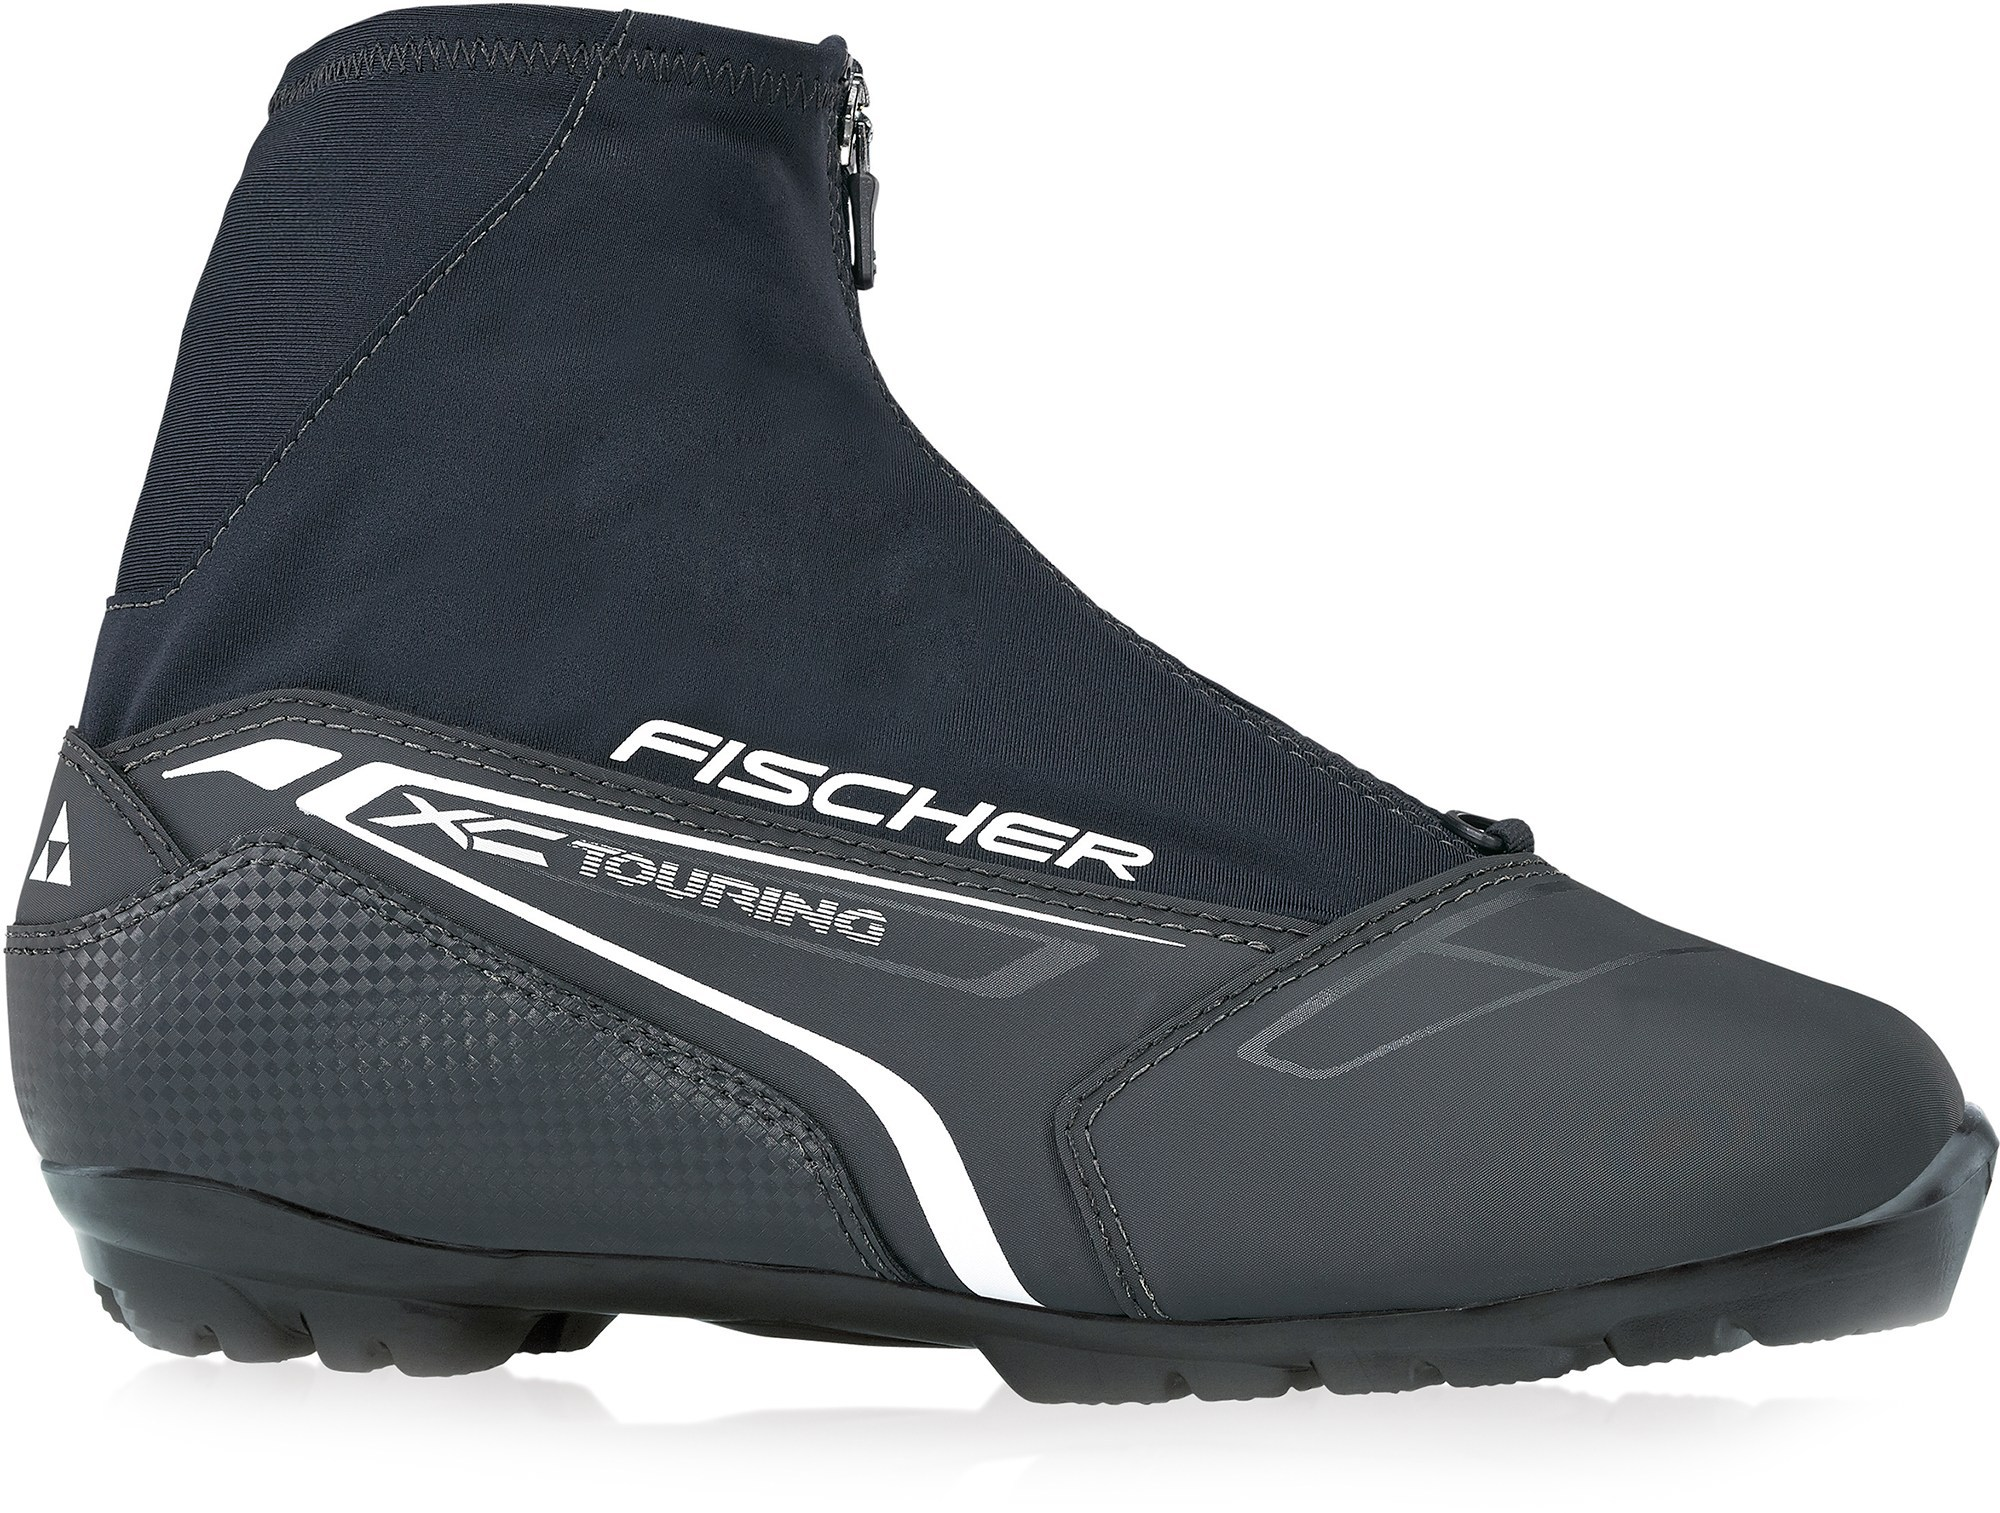 Fischer XC Touring T3 Cross-Country Ski Boots - Men's